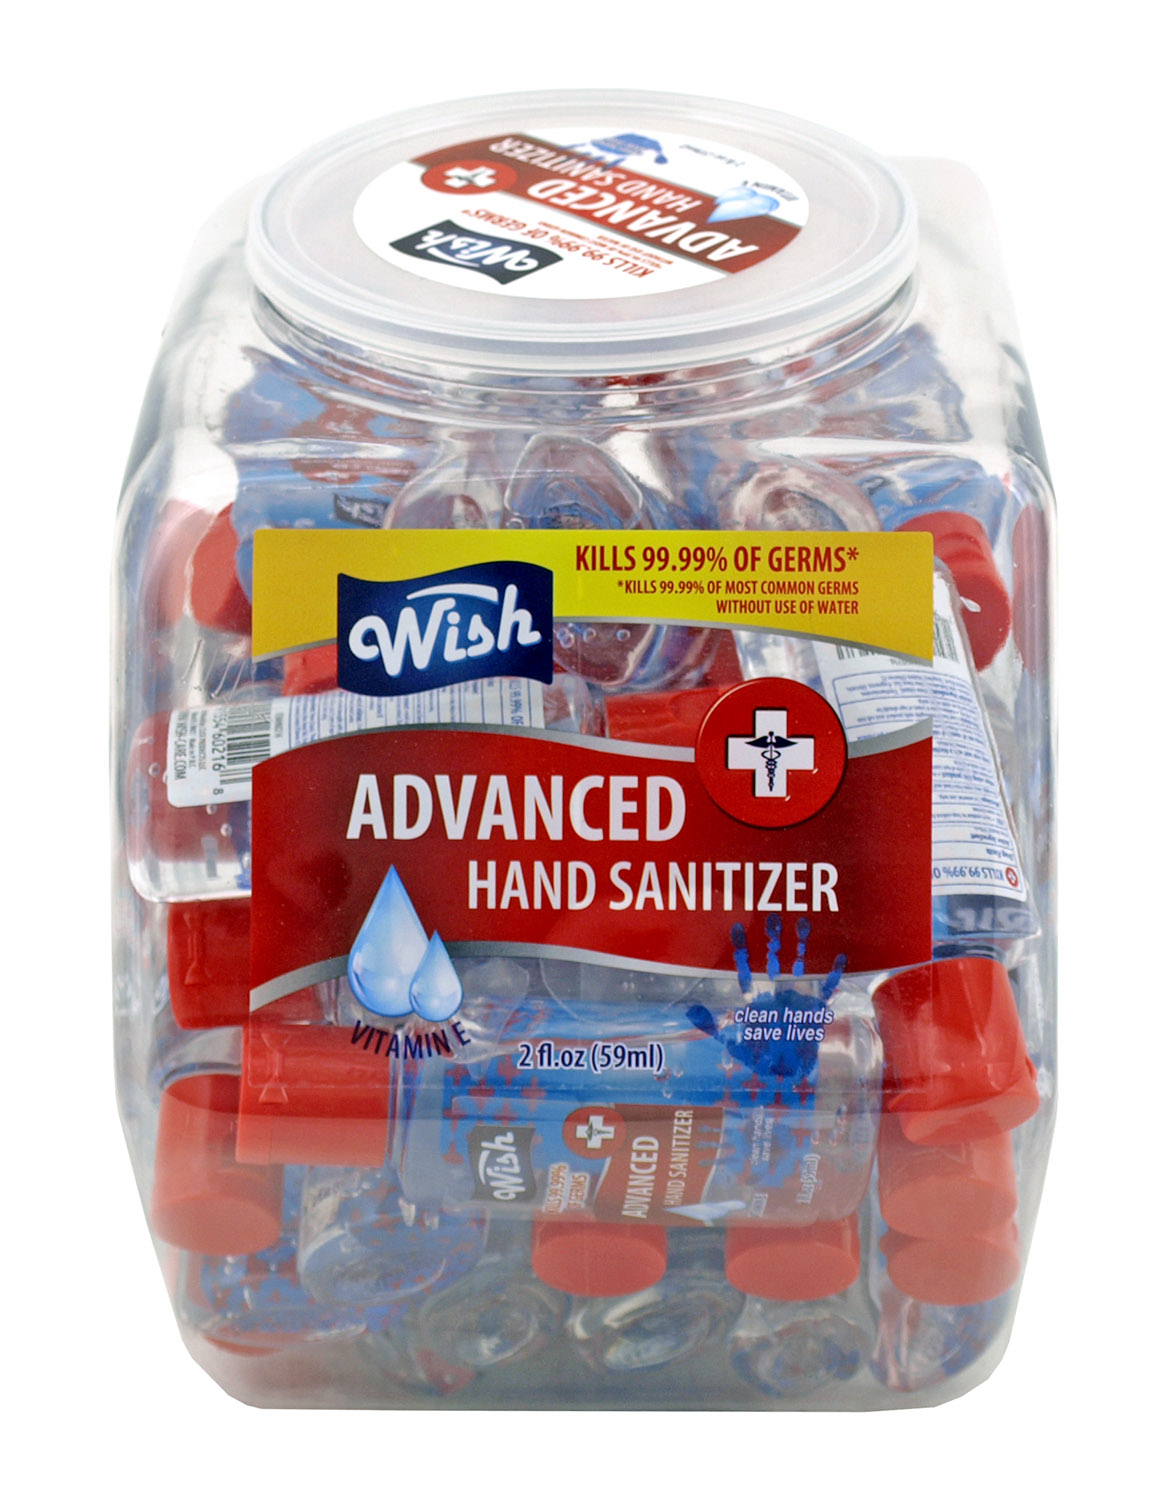 36 pc. Countertop Display of 2 oz. Wish Advanced Hand Sanitizer and Purifier